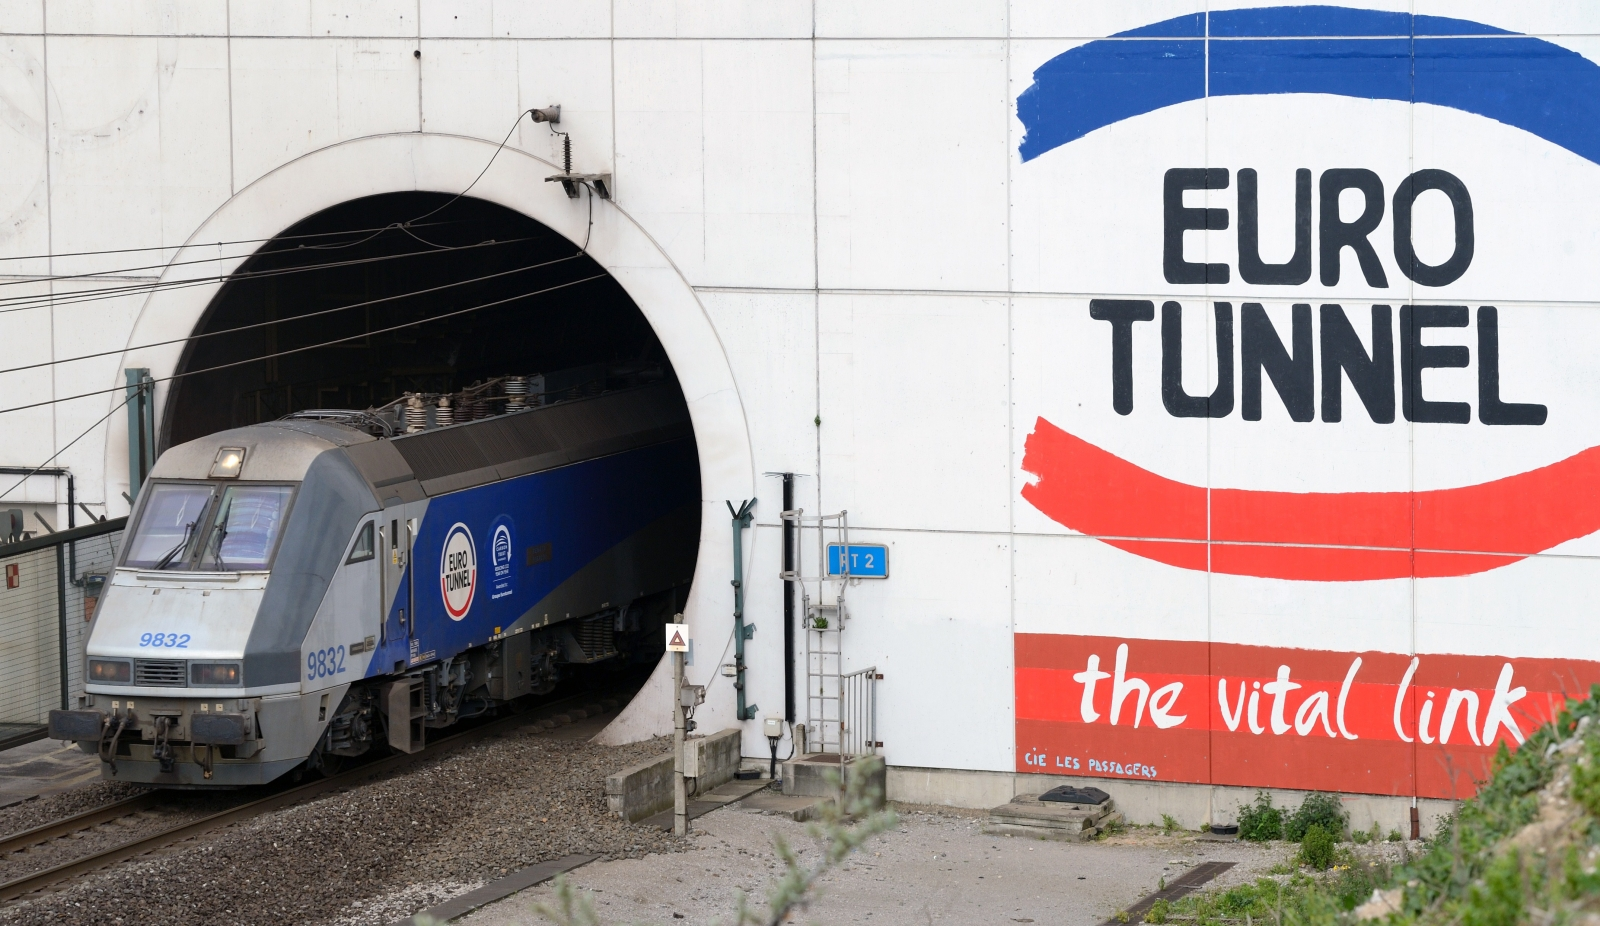 Dover Calais Tunnel >> Delays of up to 4 hours for Eurotunnel Le Shuttle passengers due to migrant activity at Calais